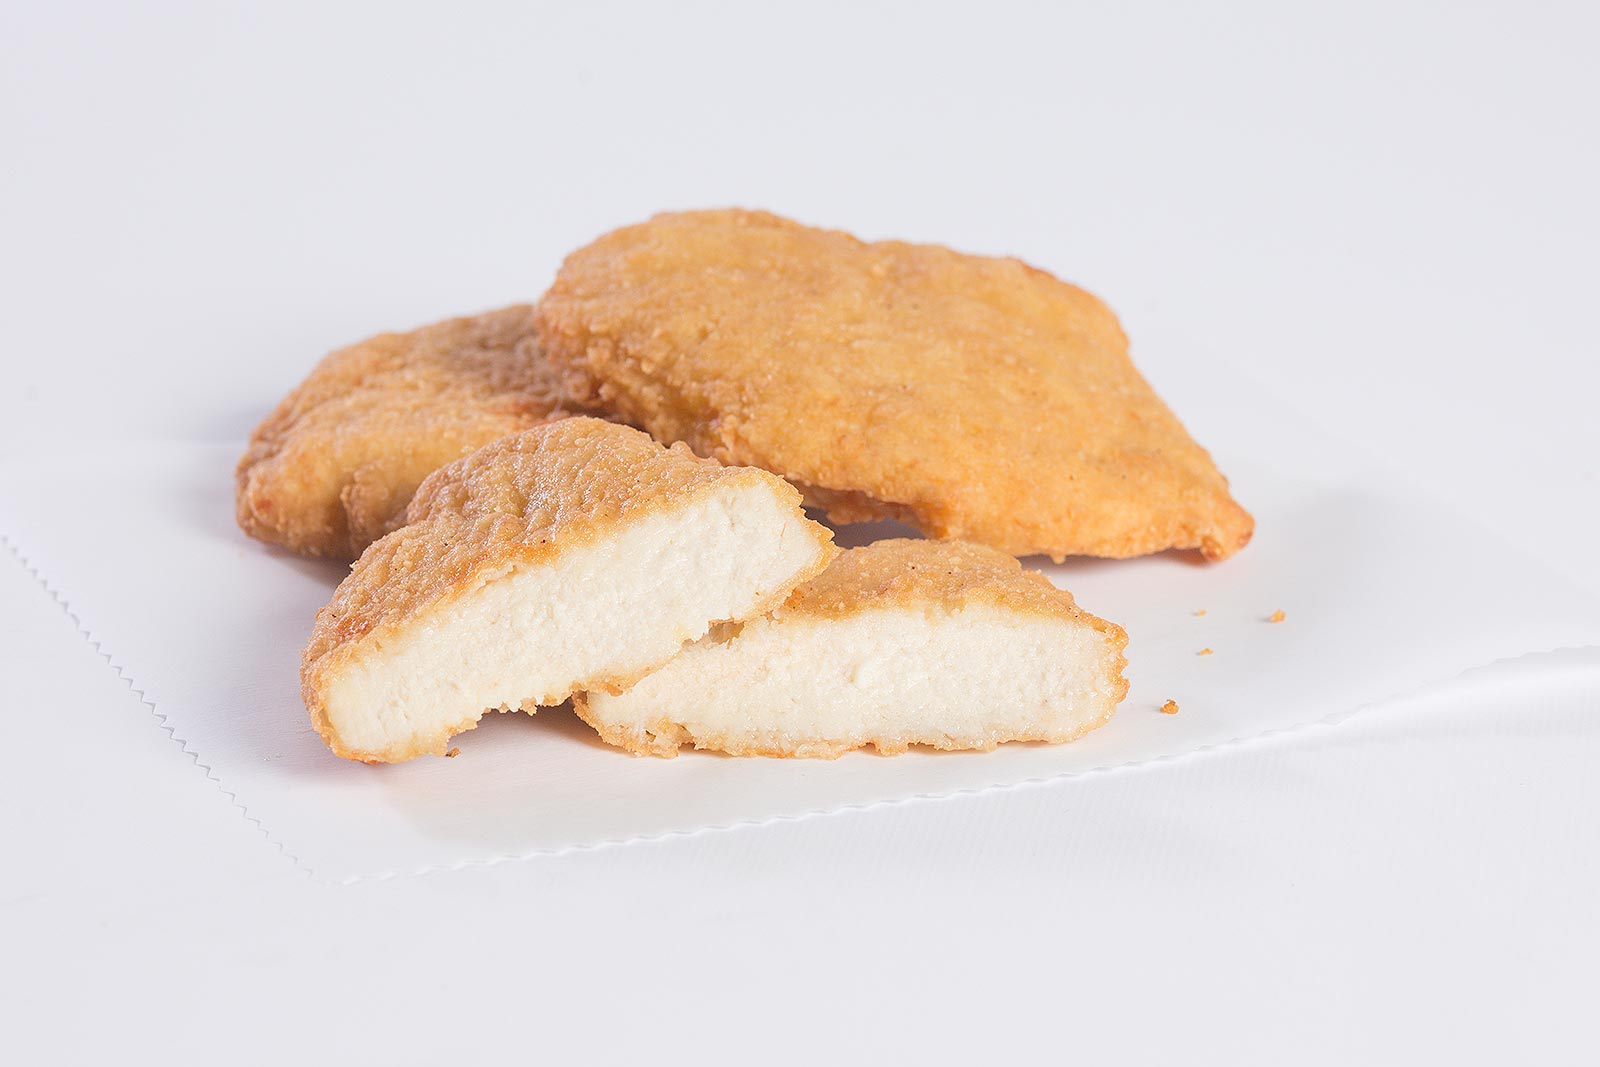 Pierce Golden Battered Fillets image